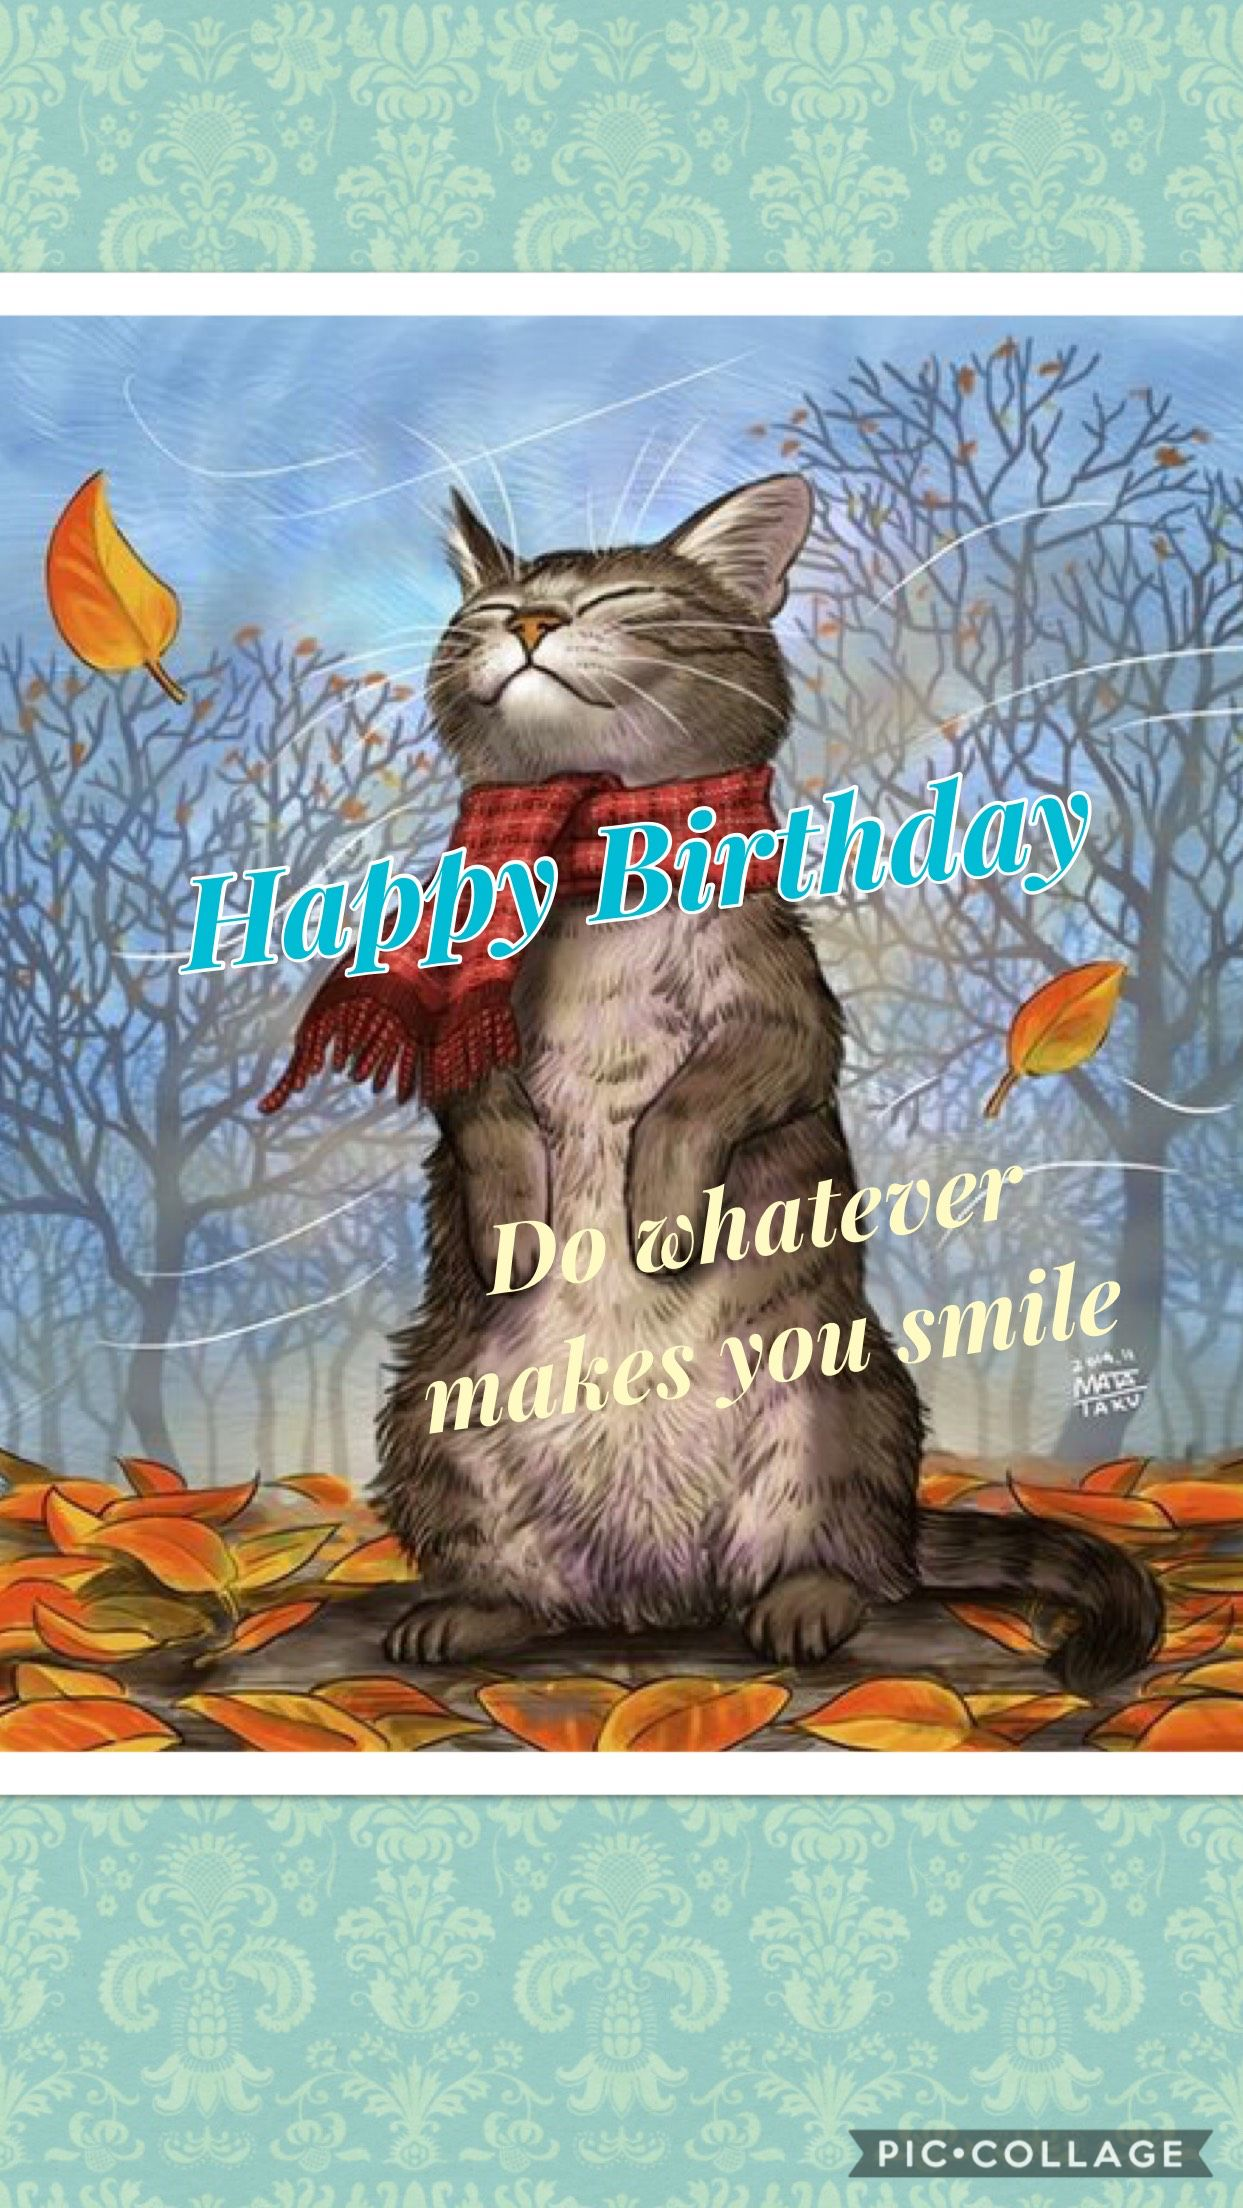 Happy birthday do whatever makes you smile happy birthday wishes happy birthday do whatever makes you smile kristyandbryce Gallery